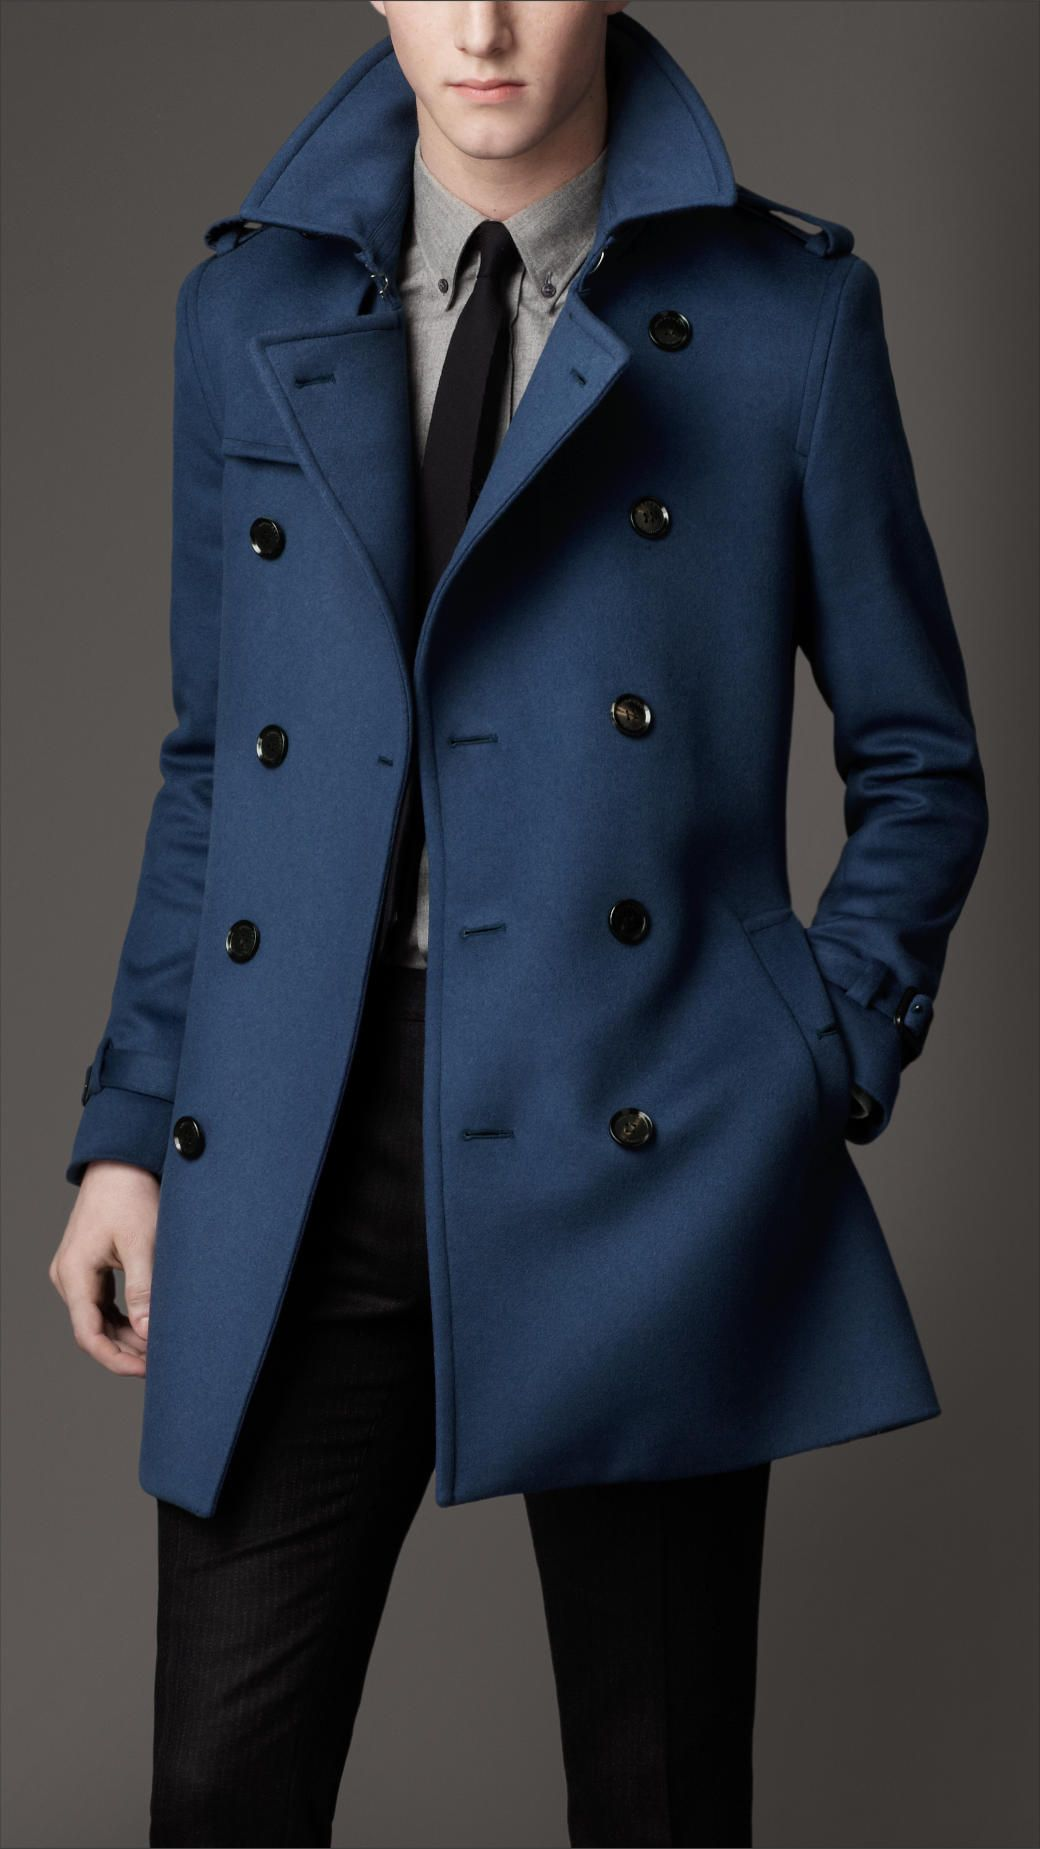 WOOL TRENCH COAT   Burberry   My Style   Mens fashion, Menswear, Fashion 5b3e4dc5cb91